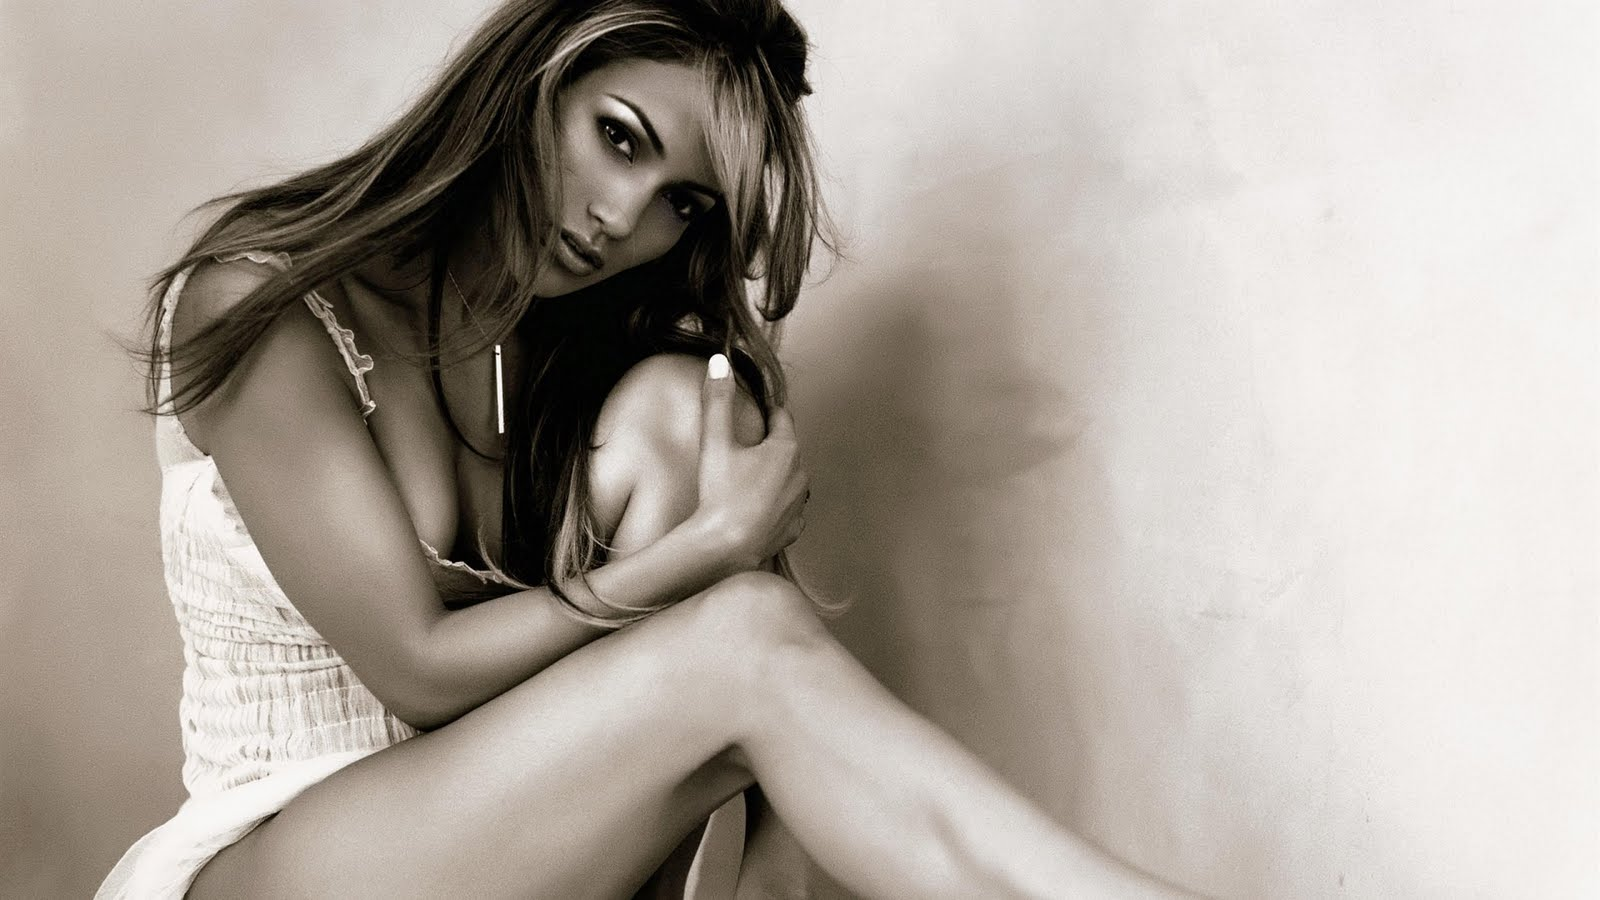 http://4.bp.blogspot.com/-q51QjpKPDK0/Tc4Z_5jxhSI/AAAAAAAAD1g/LBQljiRysLg/s1600/jennifer_lopez_hot_wallpapers-02.jpg